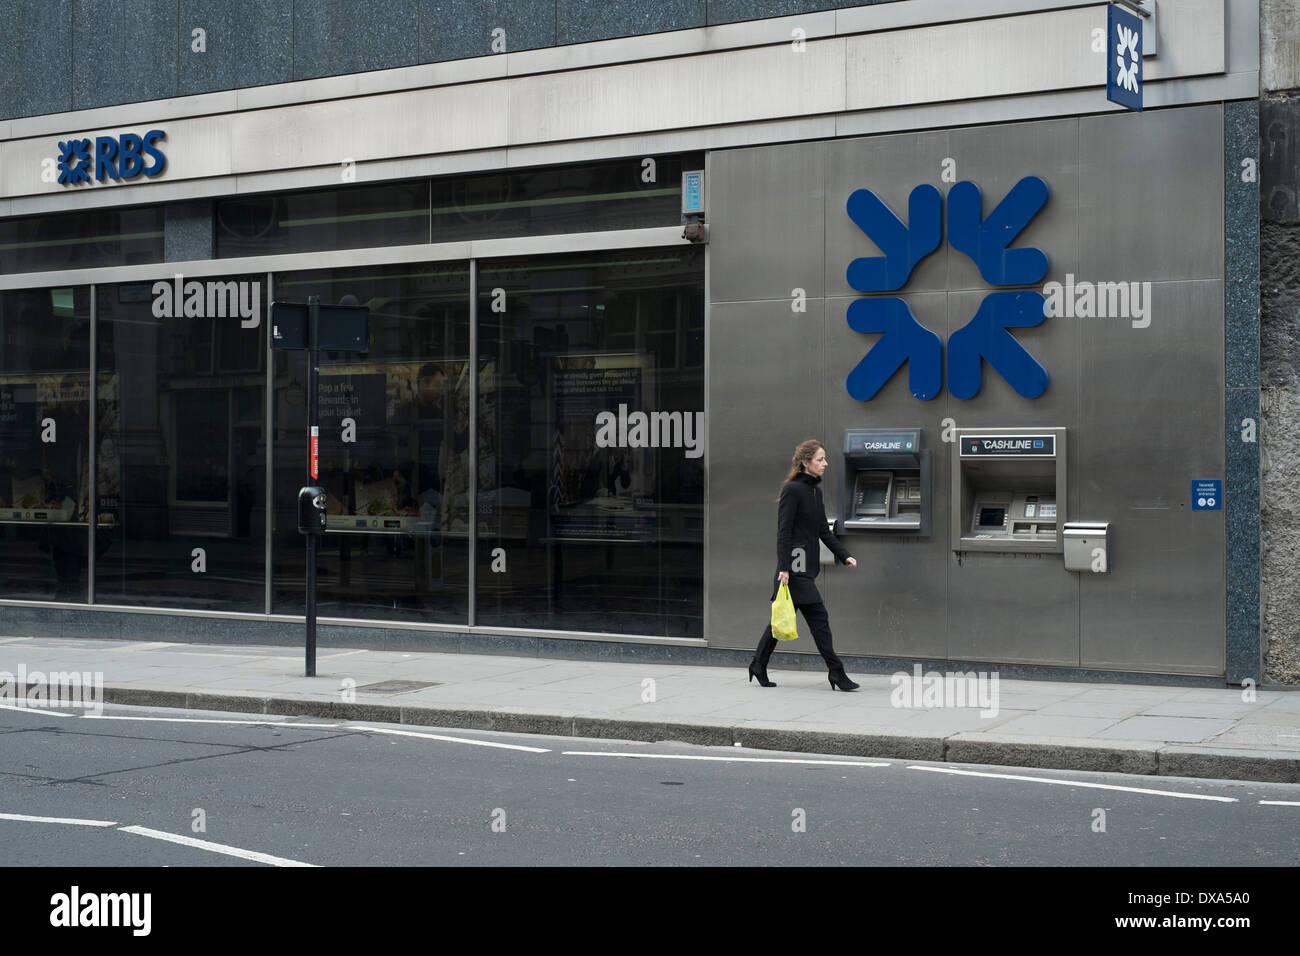 ATM machine at RBS branch in the City of London. - Stock Image